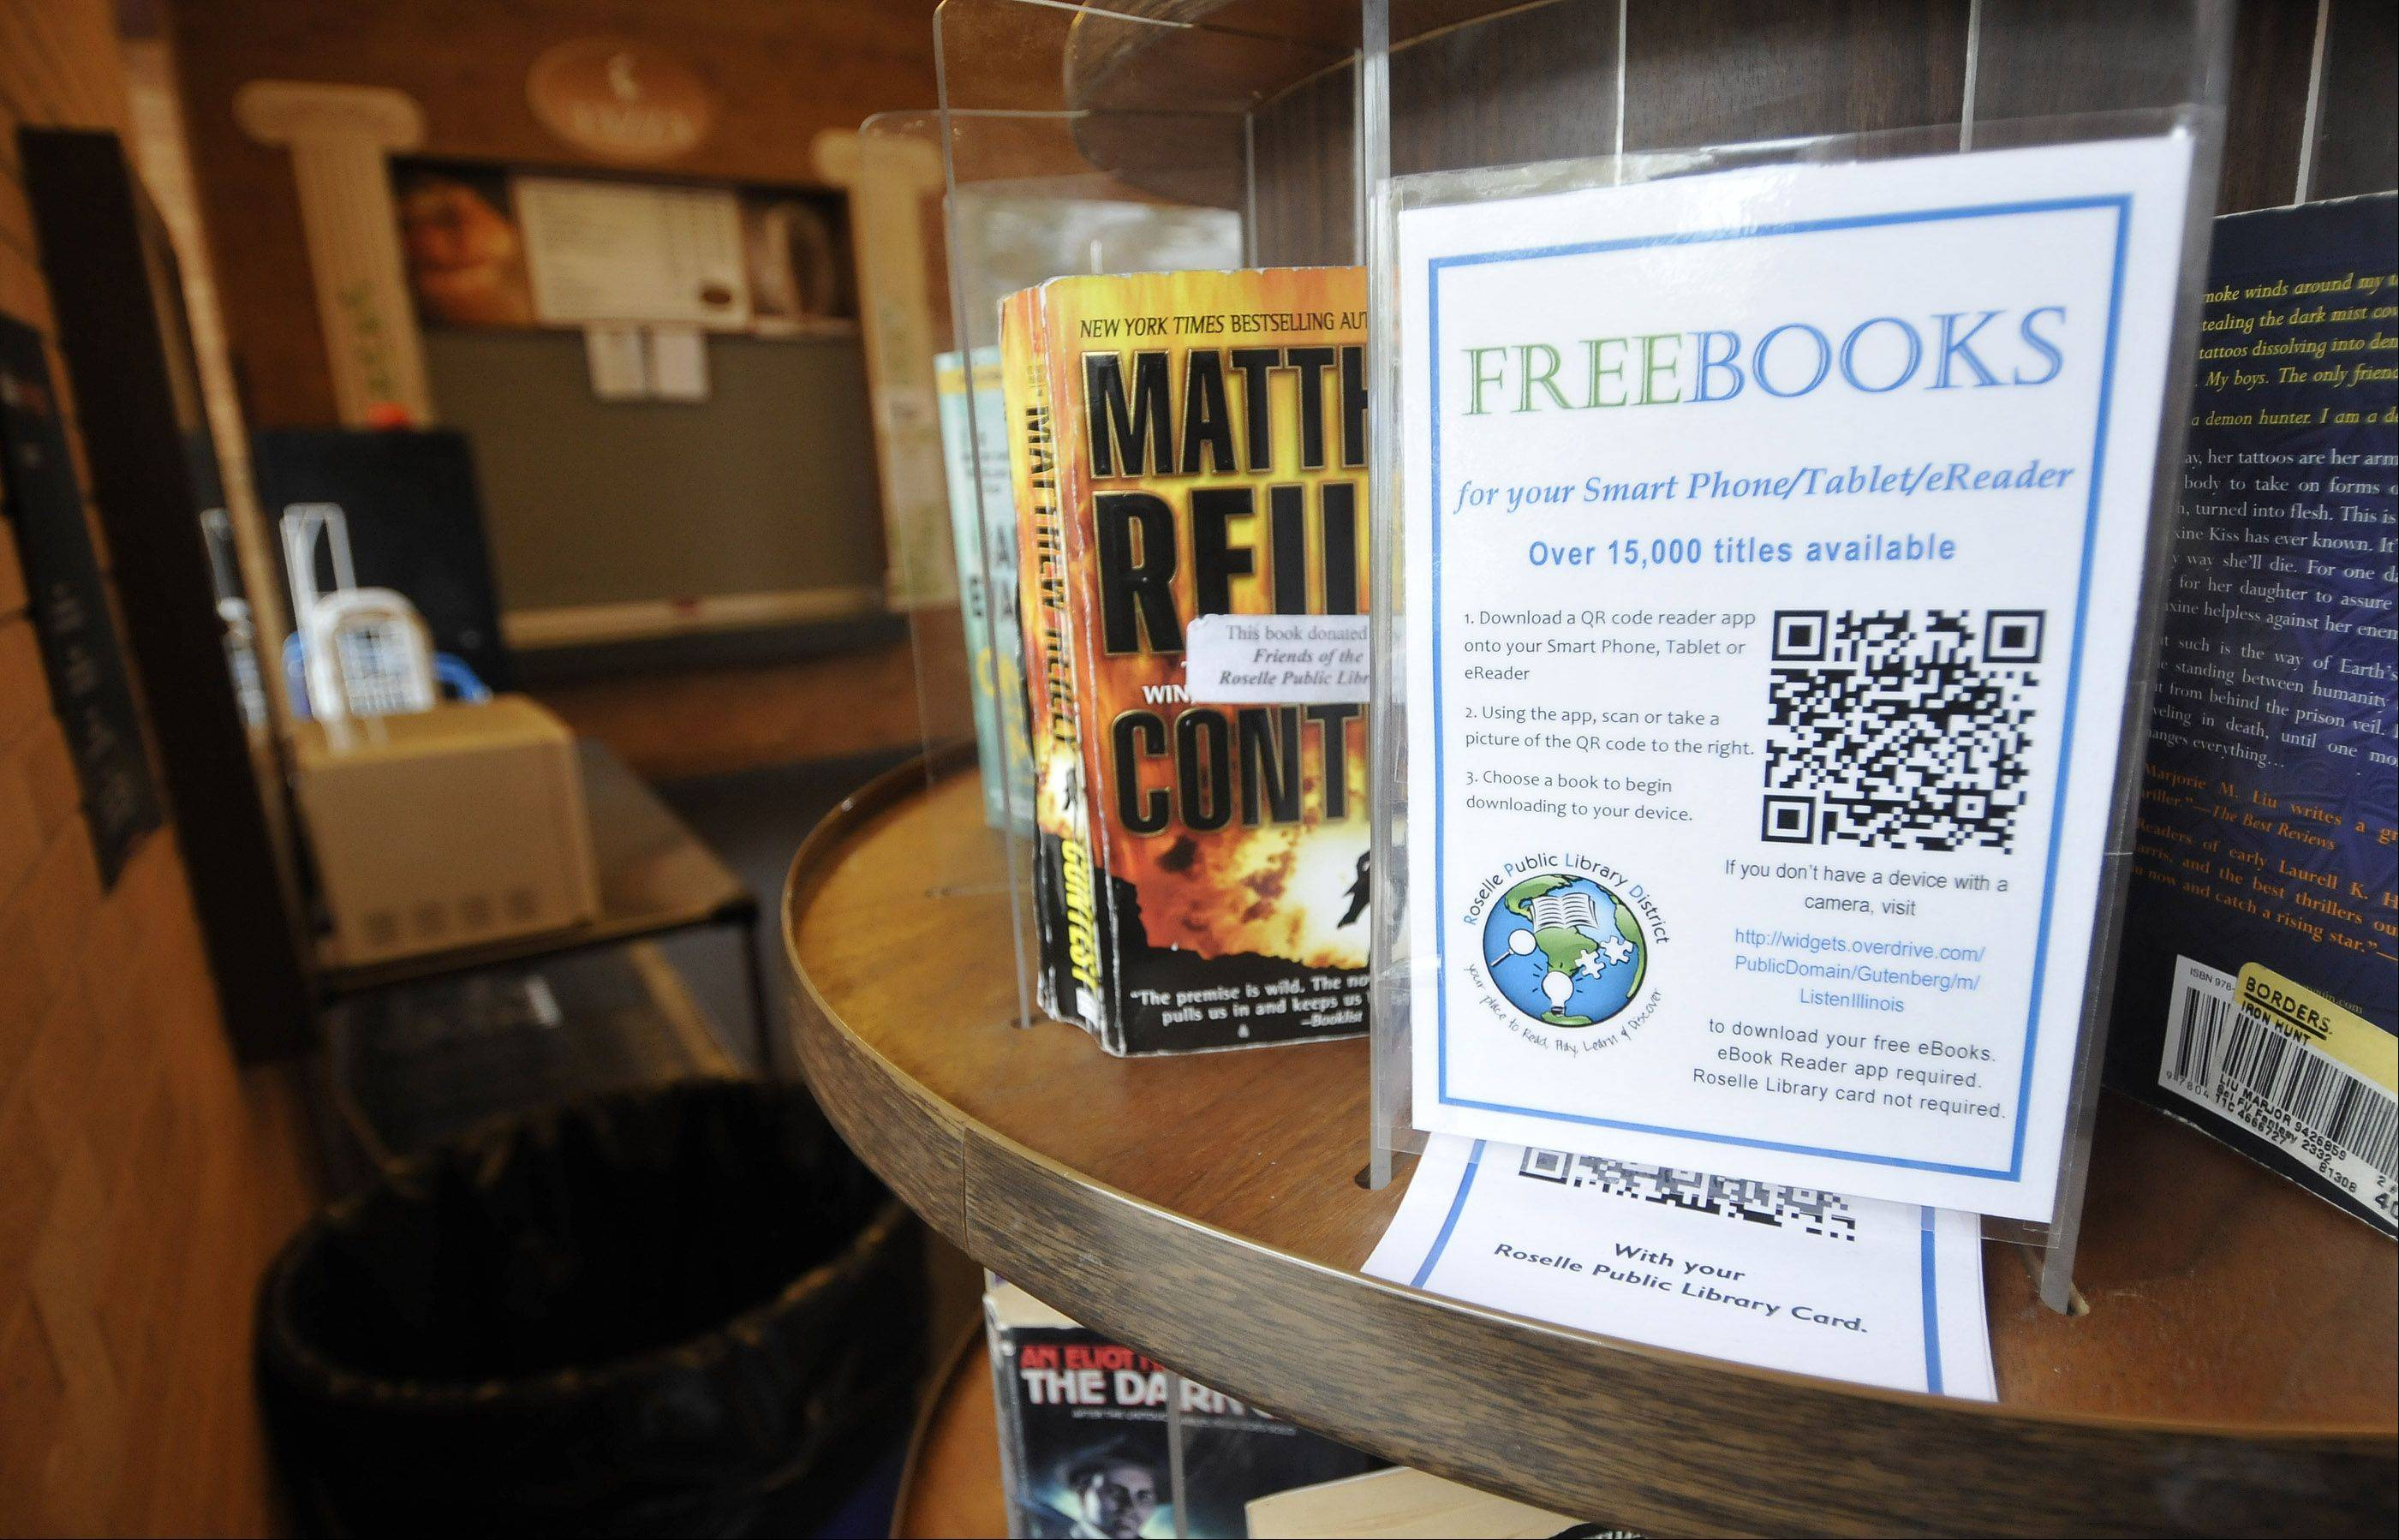 The Roselle Public Library is now providing a QR code that allows any user to access thousands of free e-books at its Friends of the Library kiosk. The kiosk is also full of paperbacks which can be borrowed on the honor system. The sign says leave a paperback book and take another one to read from the rotary shelves.